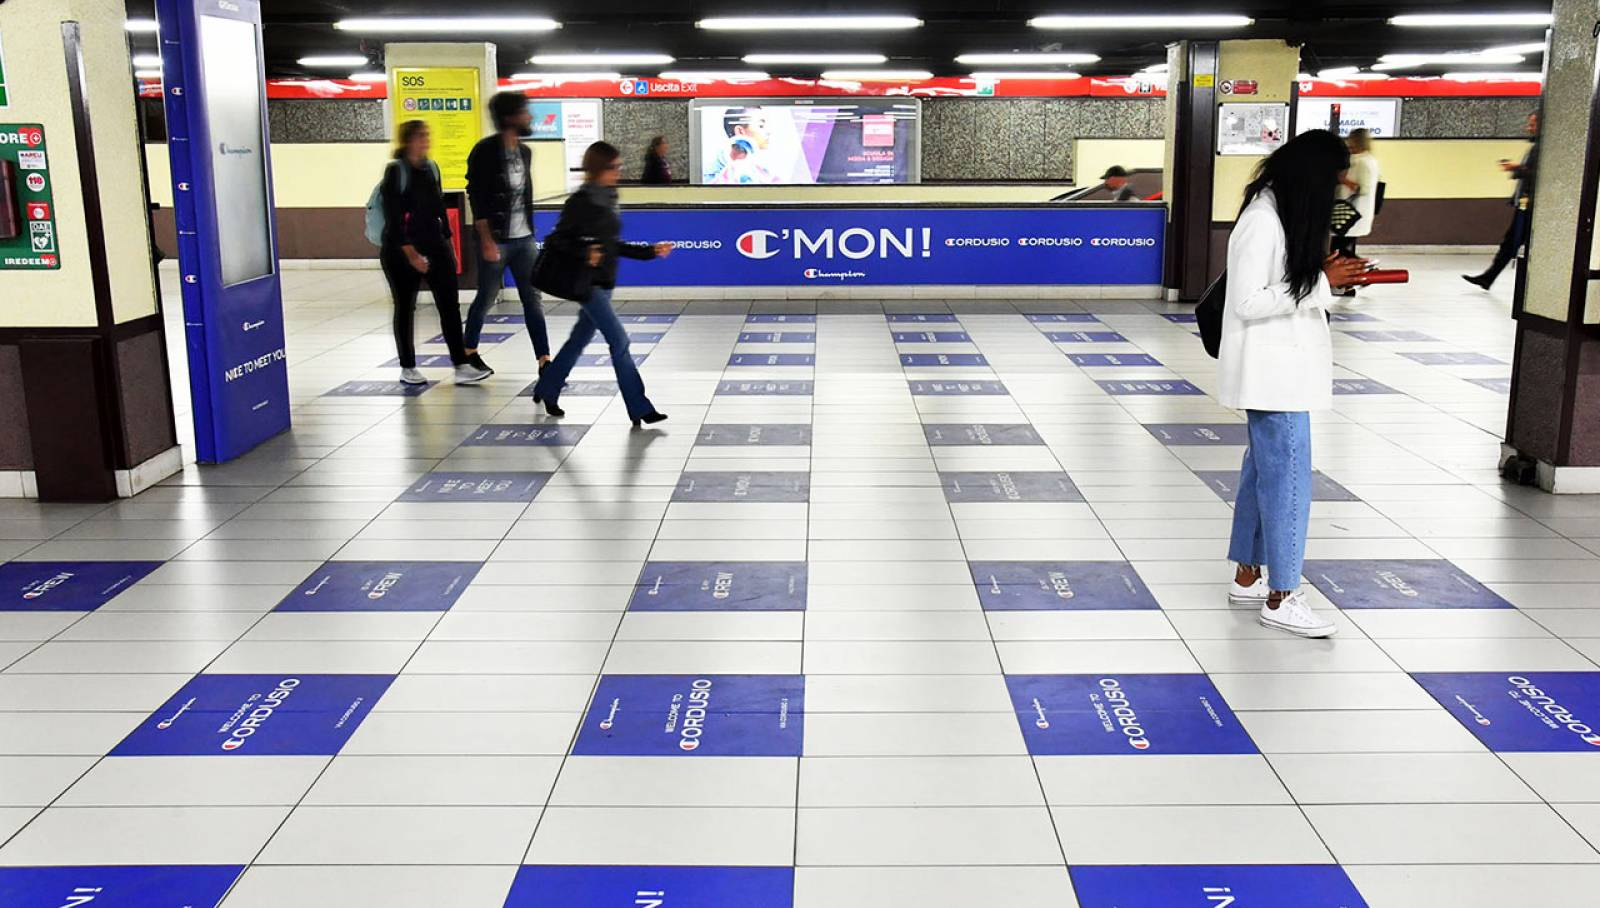 Station Domination IGPDecaux for Champion in Milan